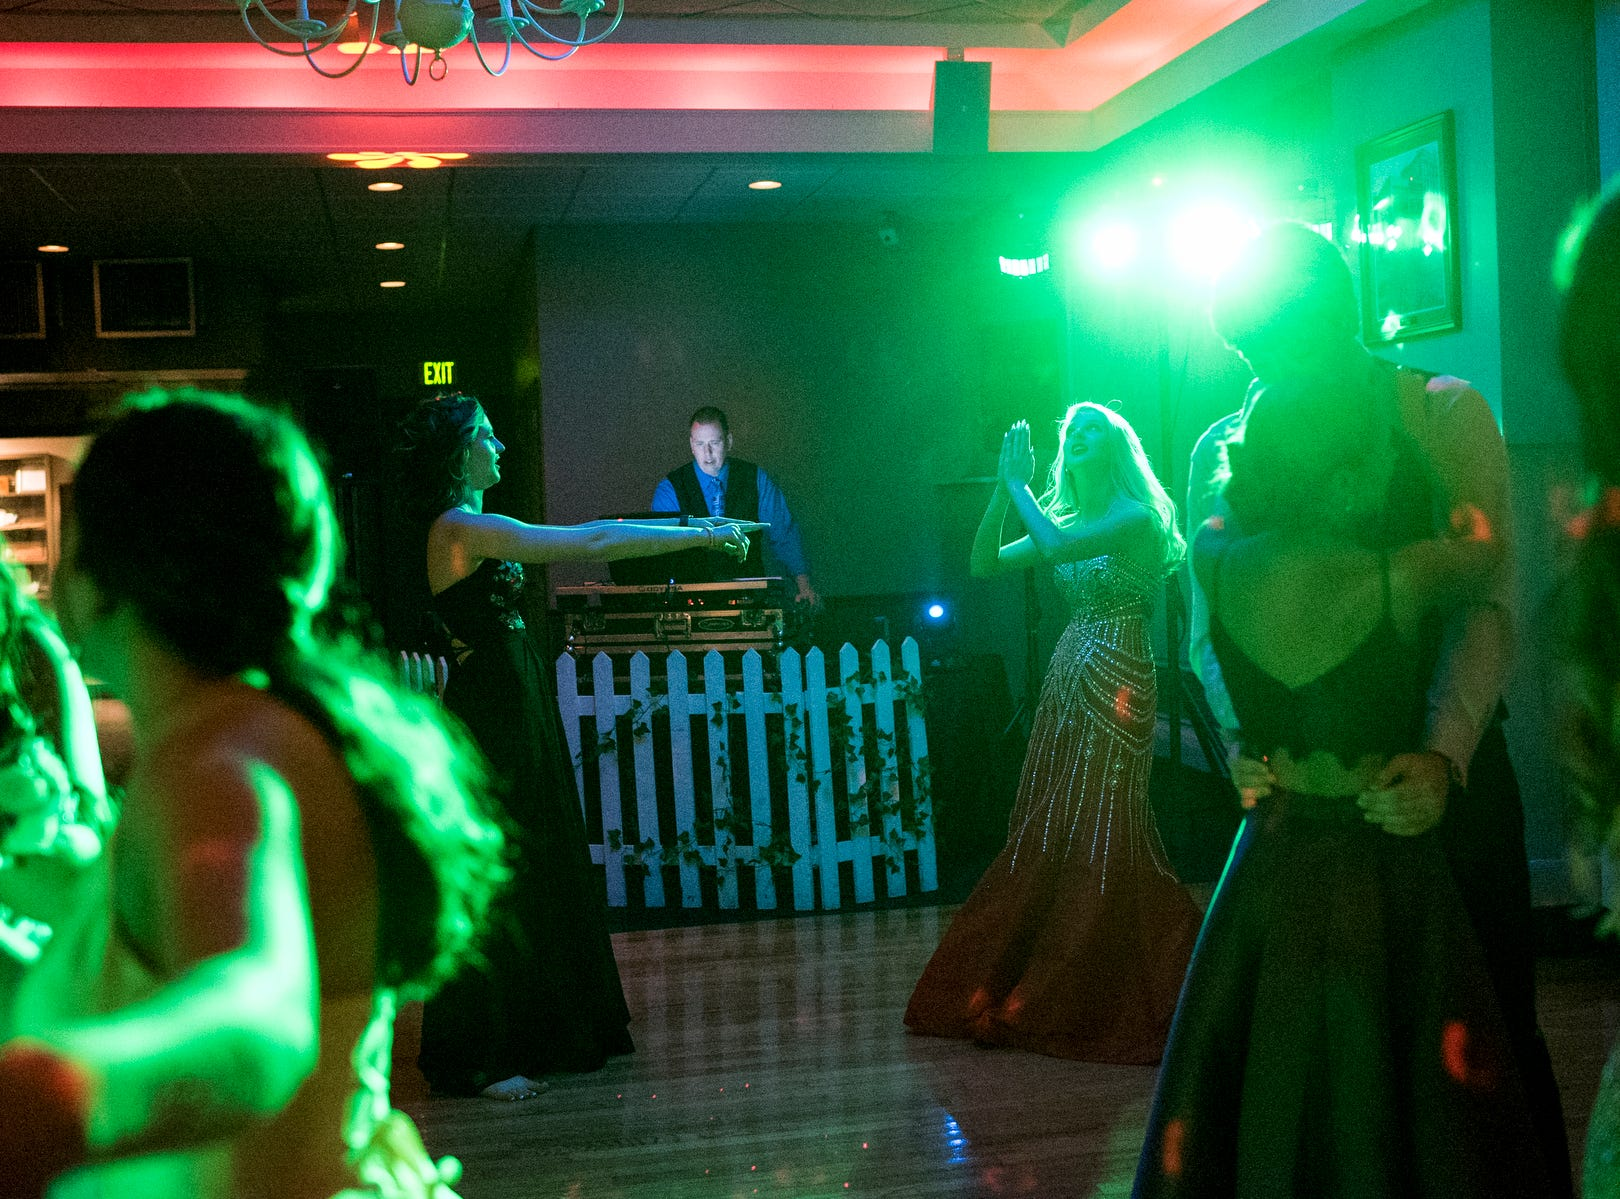 Lexi Albin, center left, and Josefine Trulsson, center right, dance together during Evansville Day School's prom held at the Hadi Shrine Banquet Hall in downtown Evansville, Ind., Saturday, April 27, 2019.